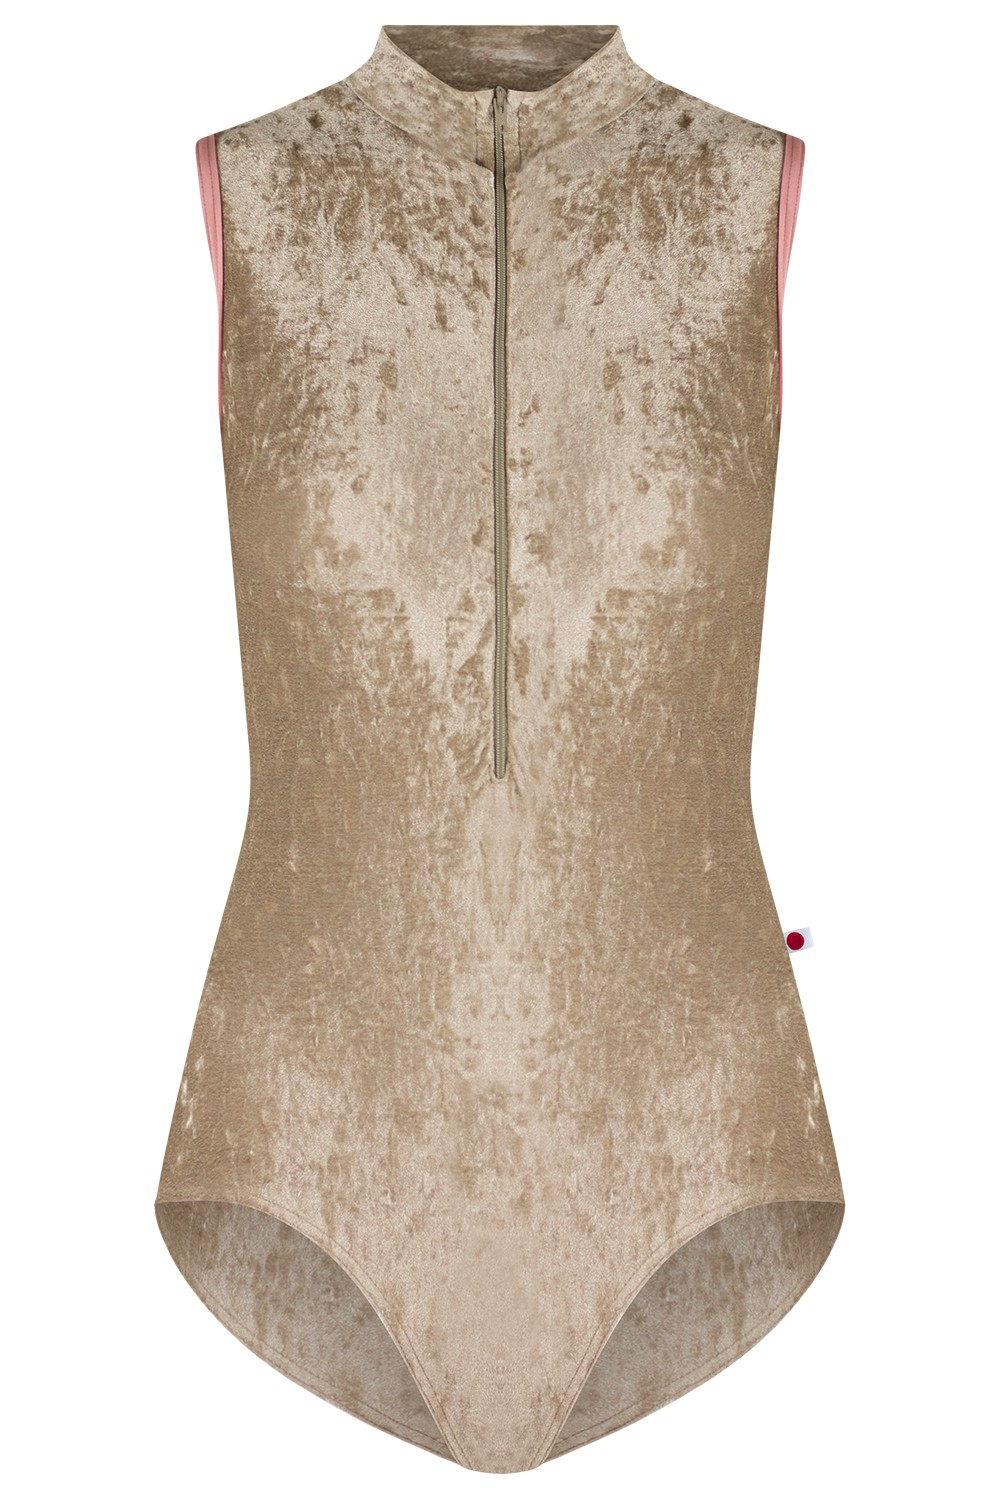 Jessica V-Toffee Mesh Brule N-Antique Rose